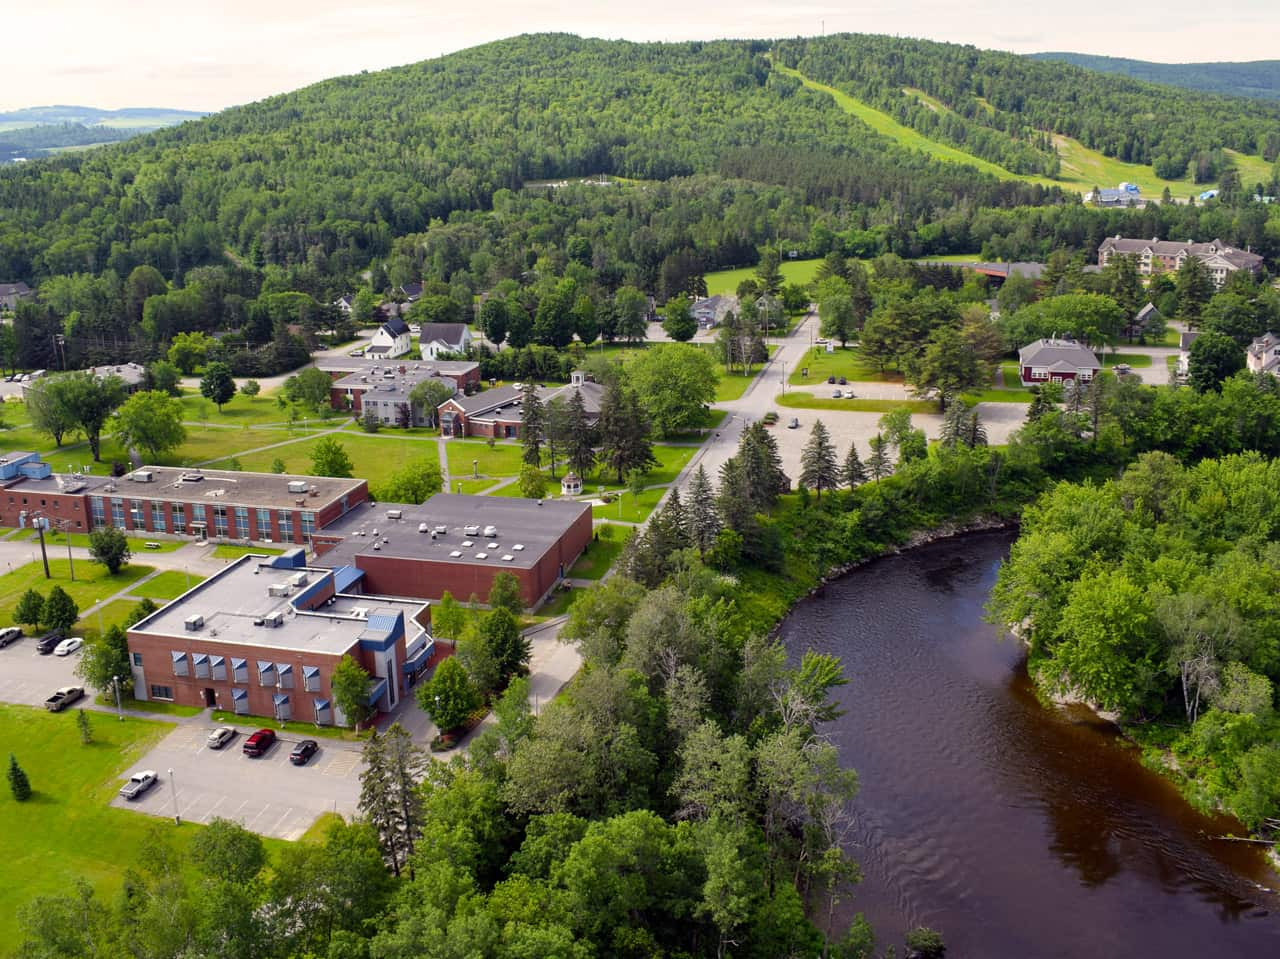 Maine's Health Sciences Campus with Professional Programs